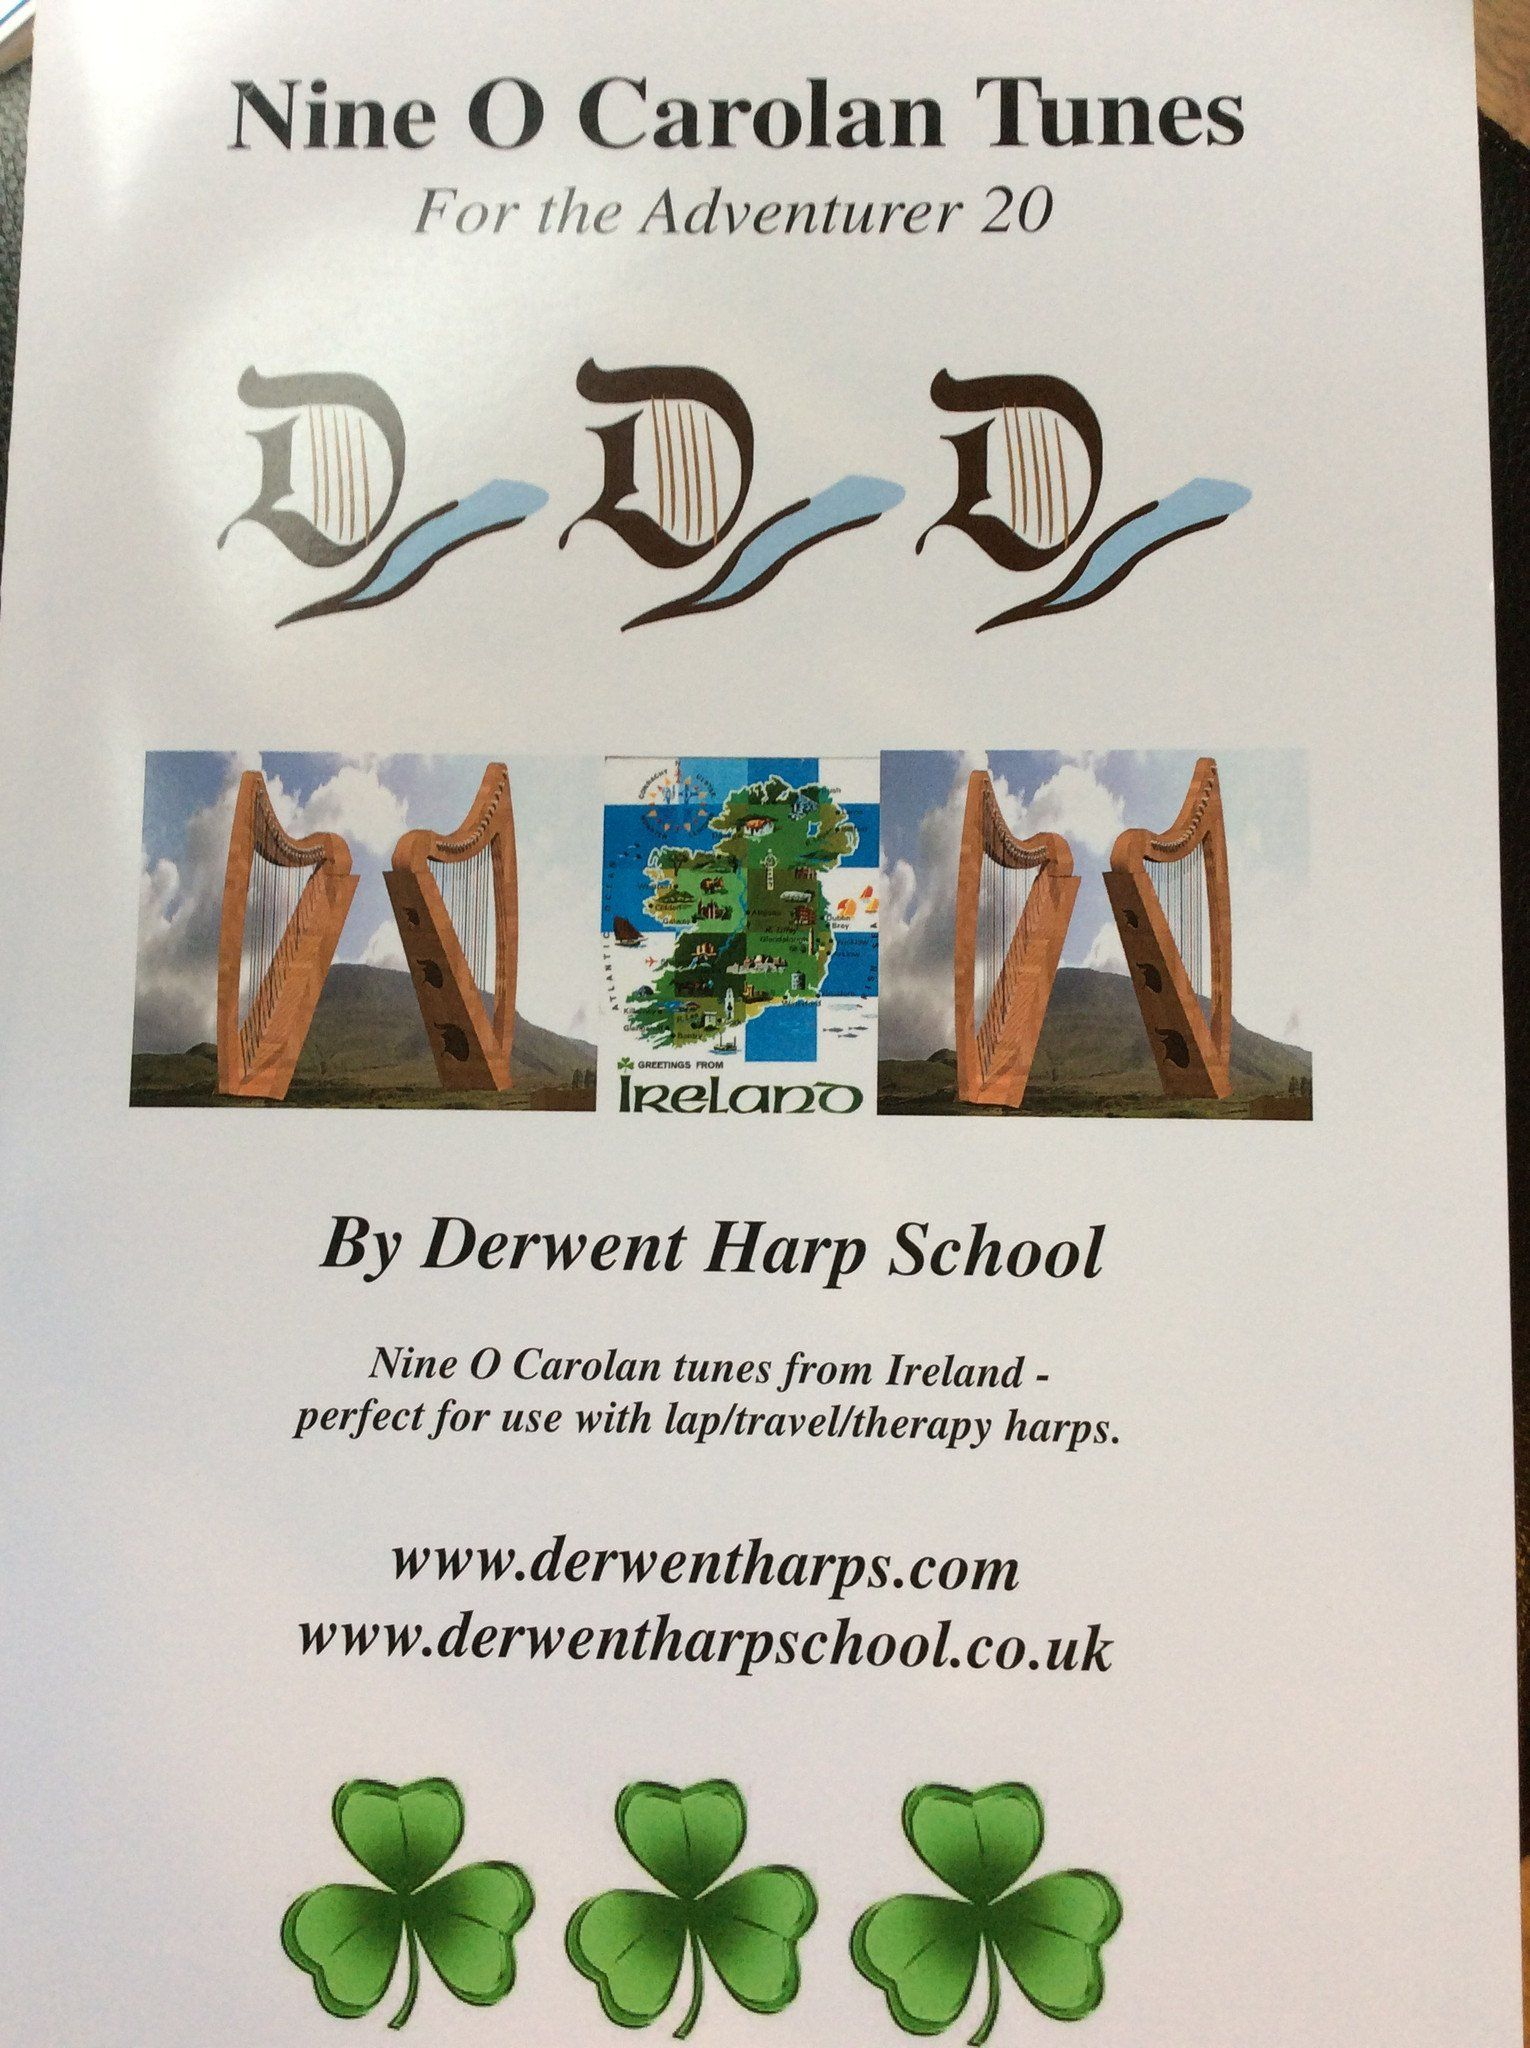 Nine O Carolan Tunes for the Adventurer 20  - by Derwent Harp School